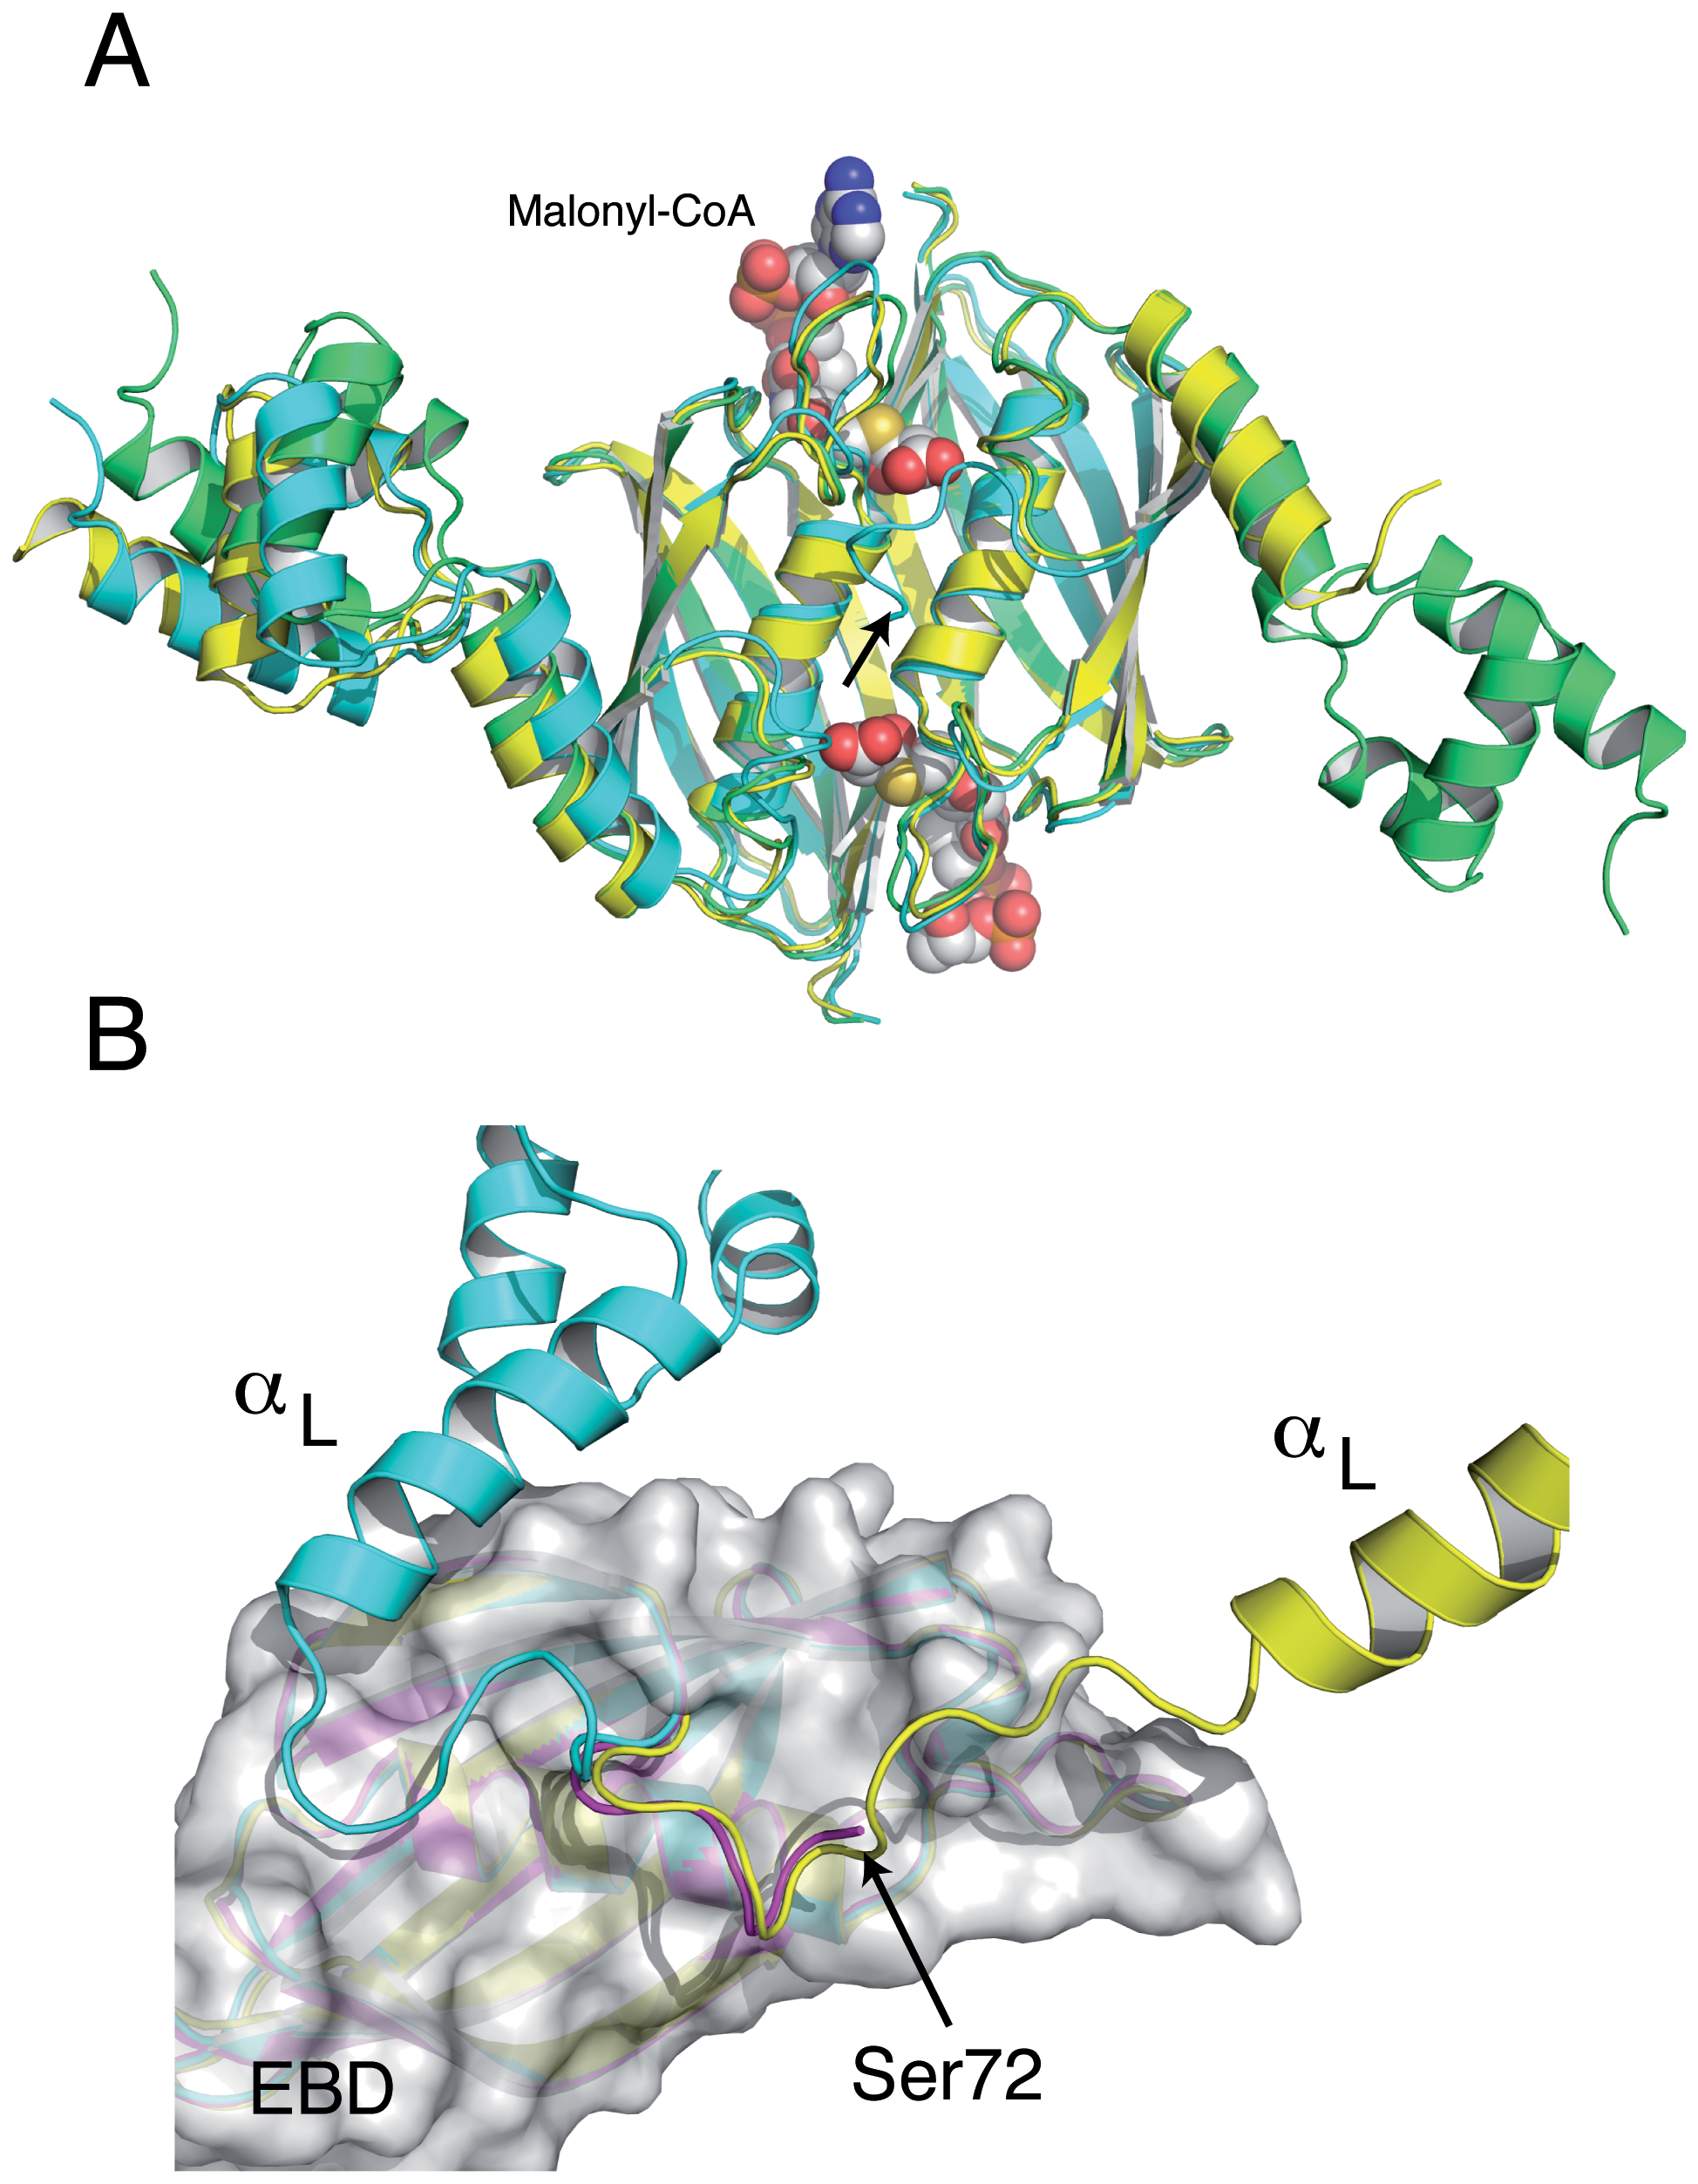 The structures of the <i>Sa</i>FapR homodimer in the absence of ligands display distinctive features of either the malonyl-CoA-bound or the DNA-bound forms of the repressor.